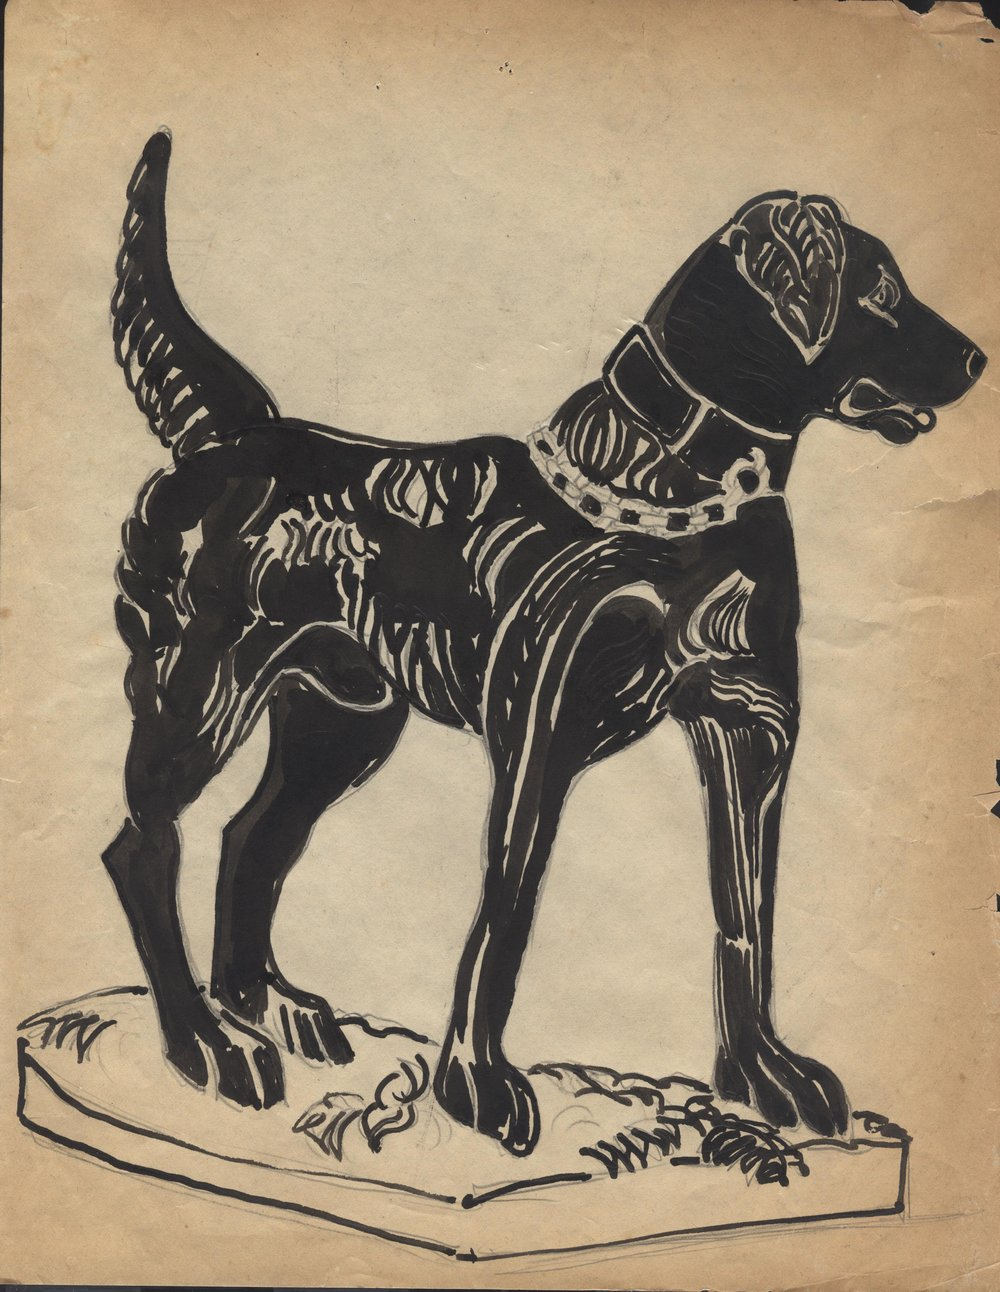 Original sketch of one of the Pillot dogs by Grace Spaulding John. Circa 1940. Permanent Collection of The Heritage Society.